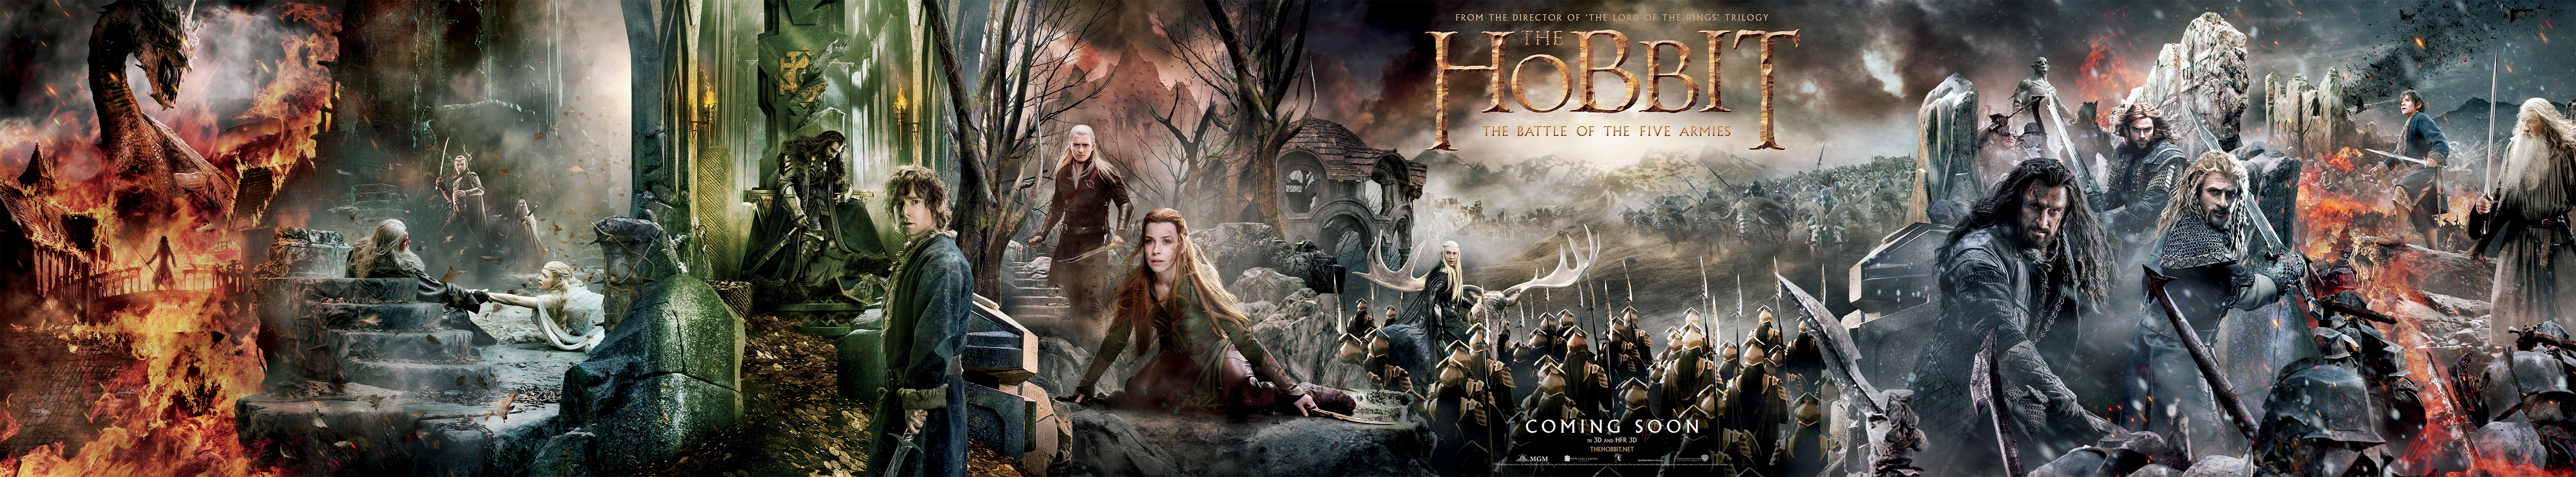 hobbit-botfa-scroll-hi-res